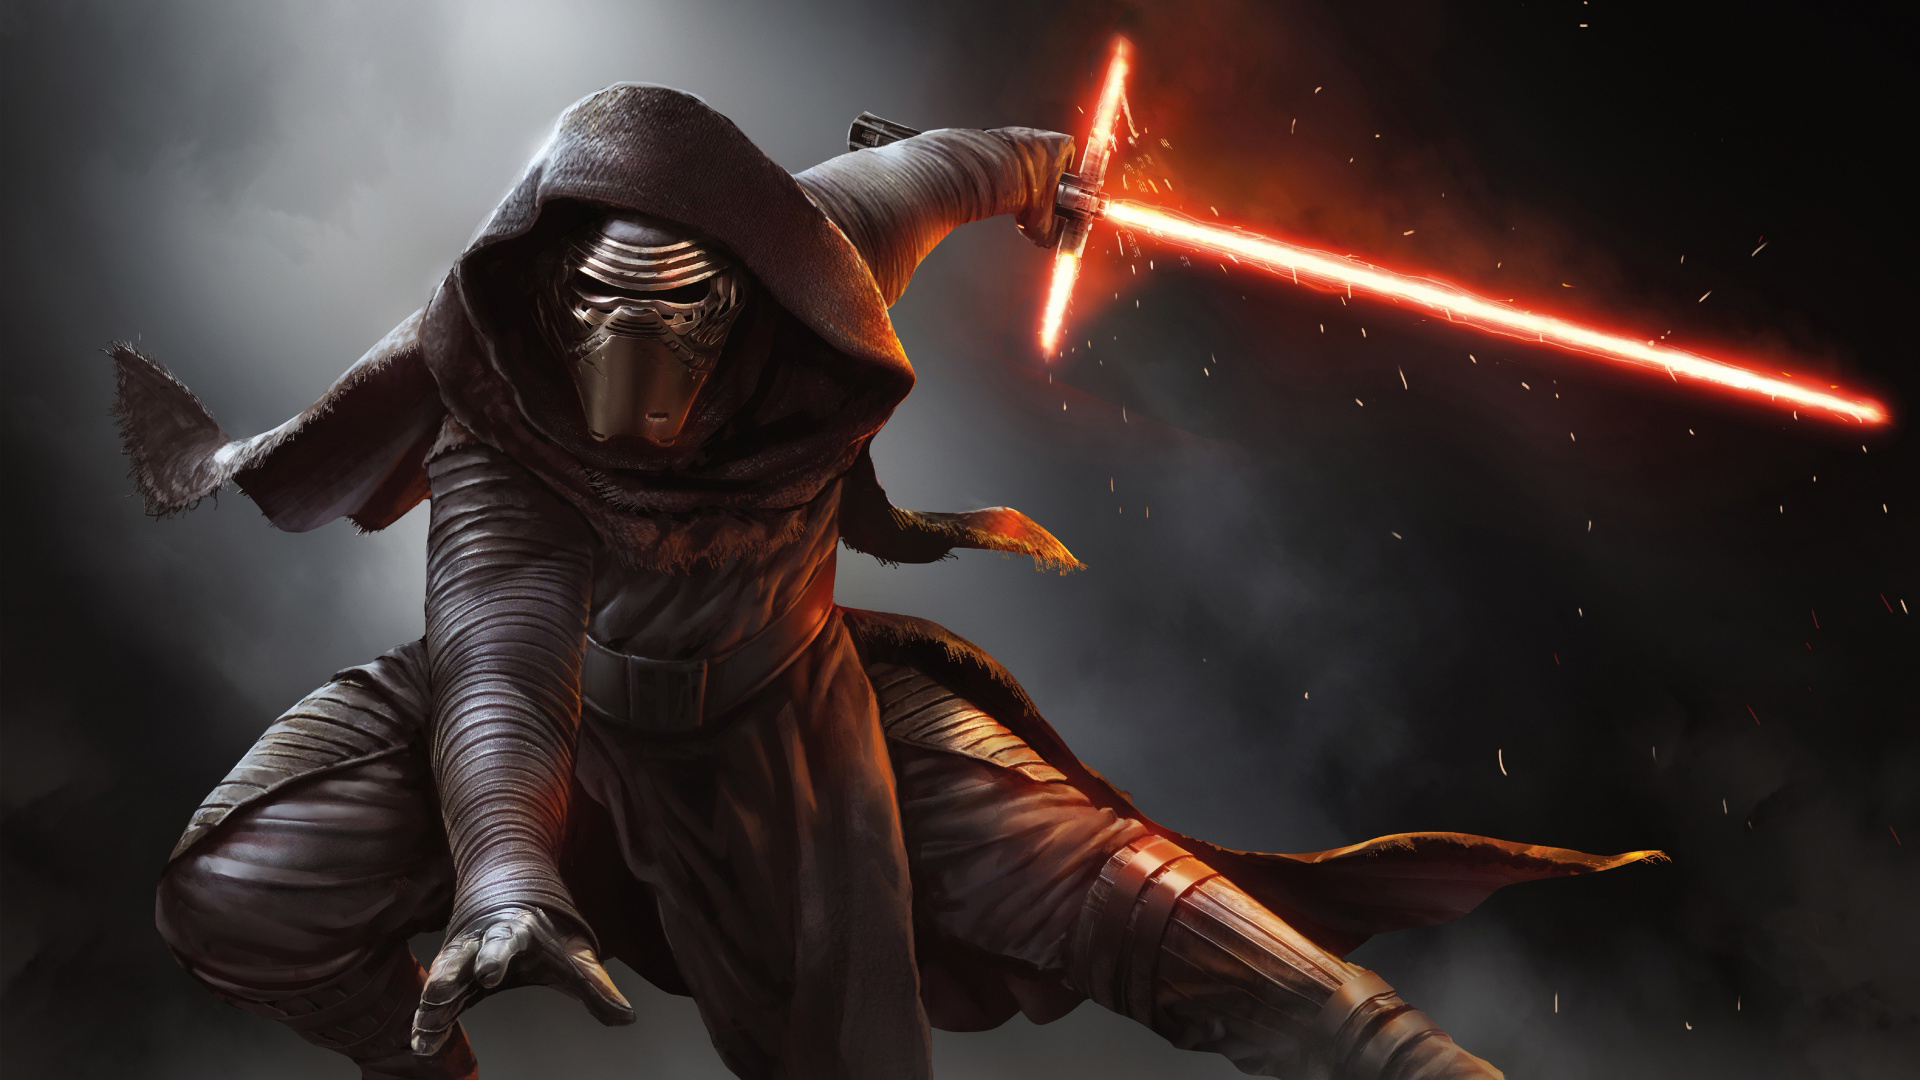 KYLO REN WALLPAPERS FREE Wallpapers Background images 1920x1080